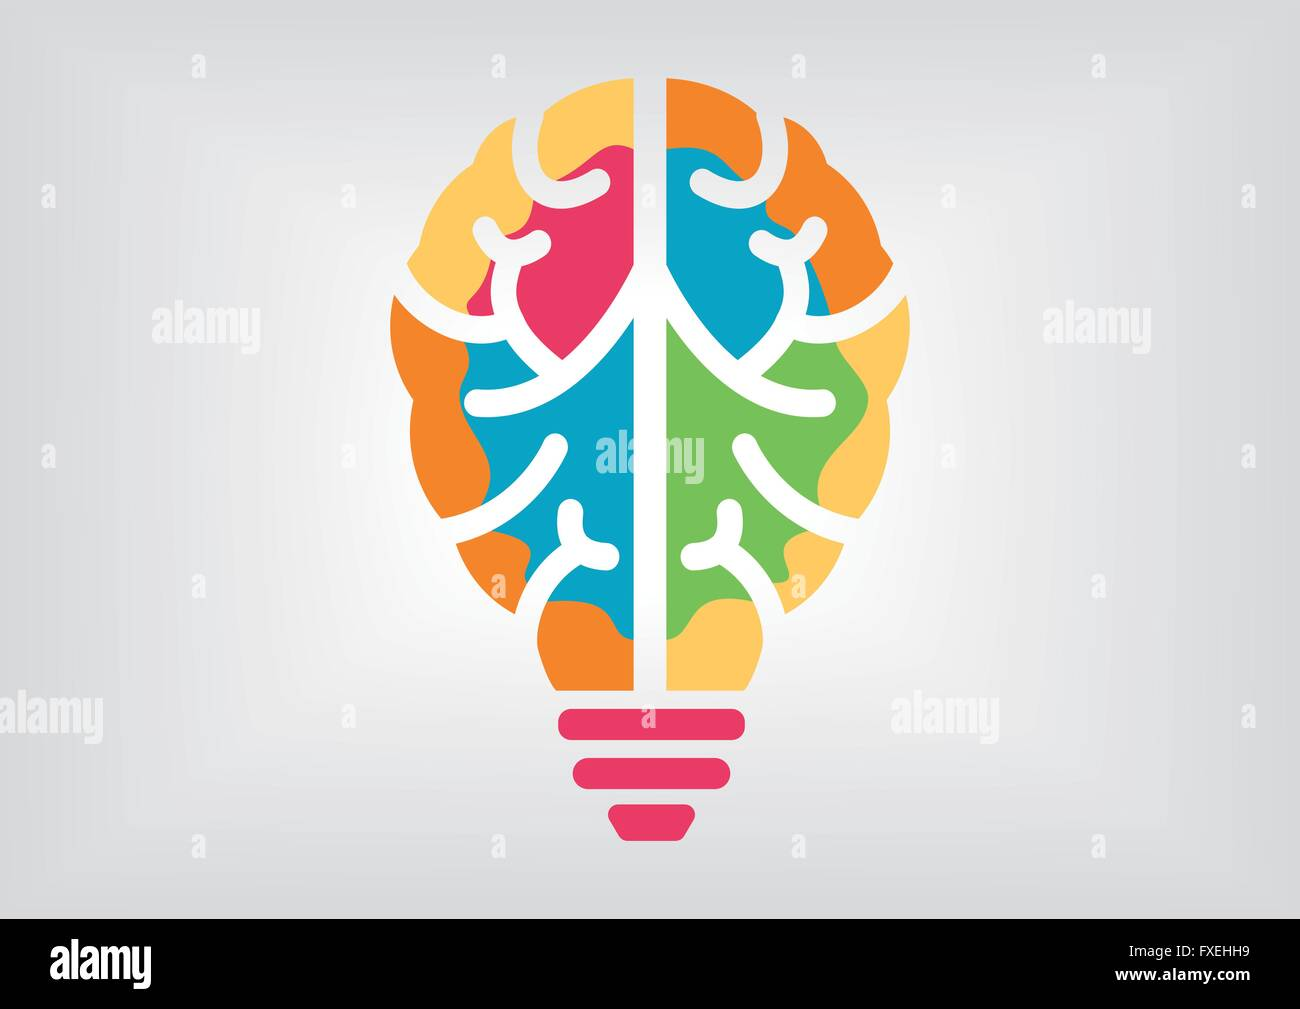 Colorful infographic for creativity and intelligence concept. Icon of brain and light bulb. - Stock Image